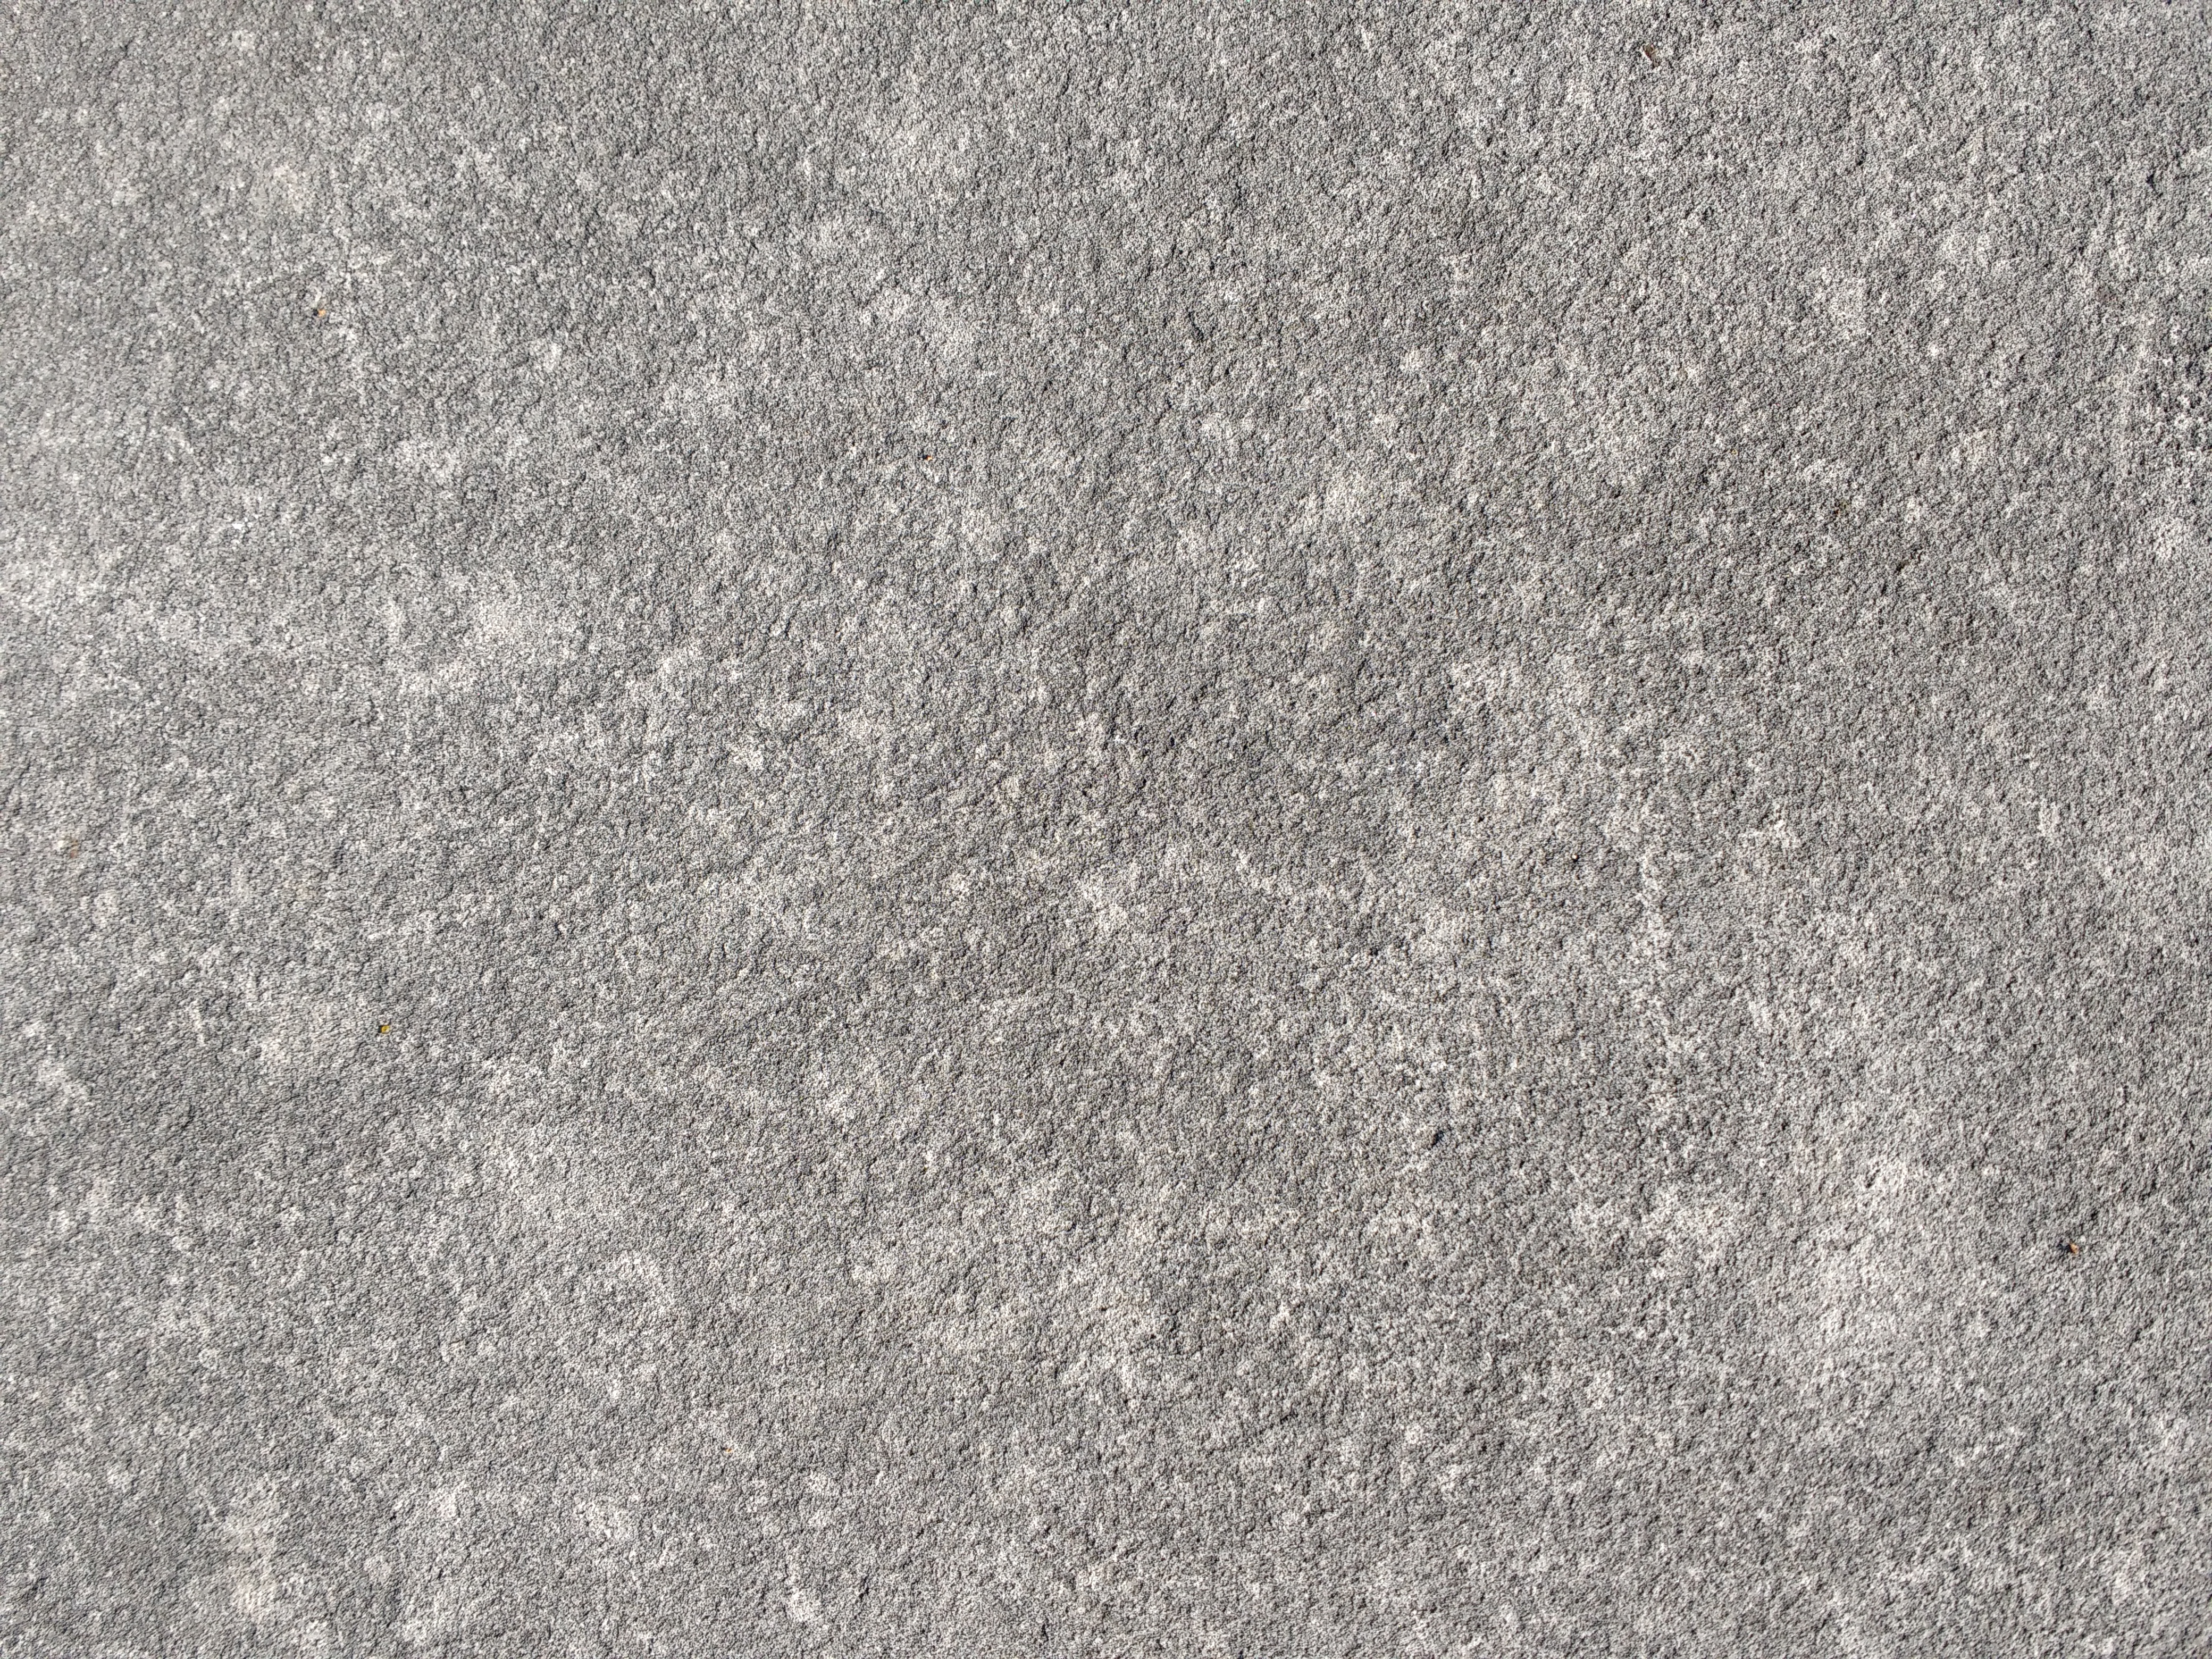 Gray Limestone Texture Picture Free Photograph Photos